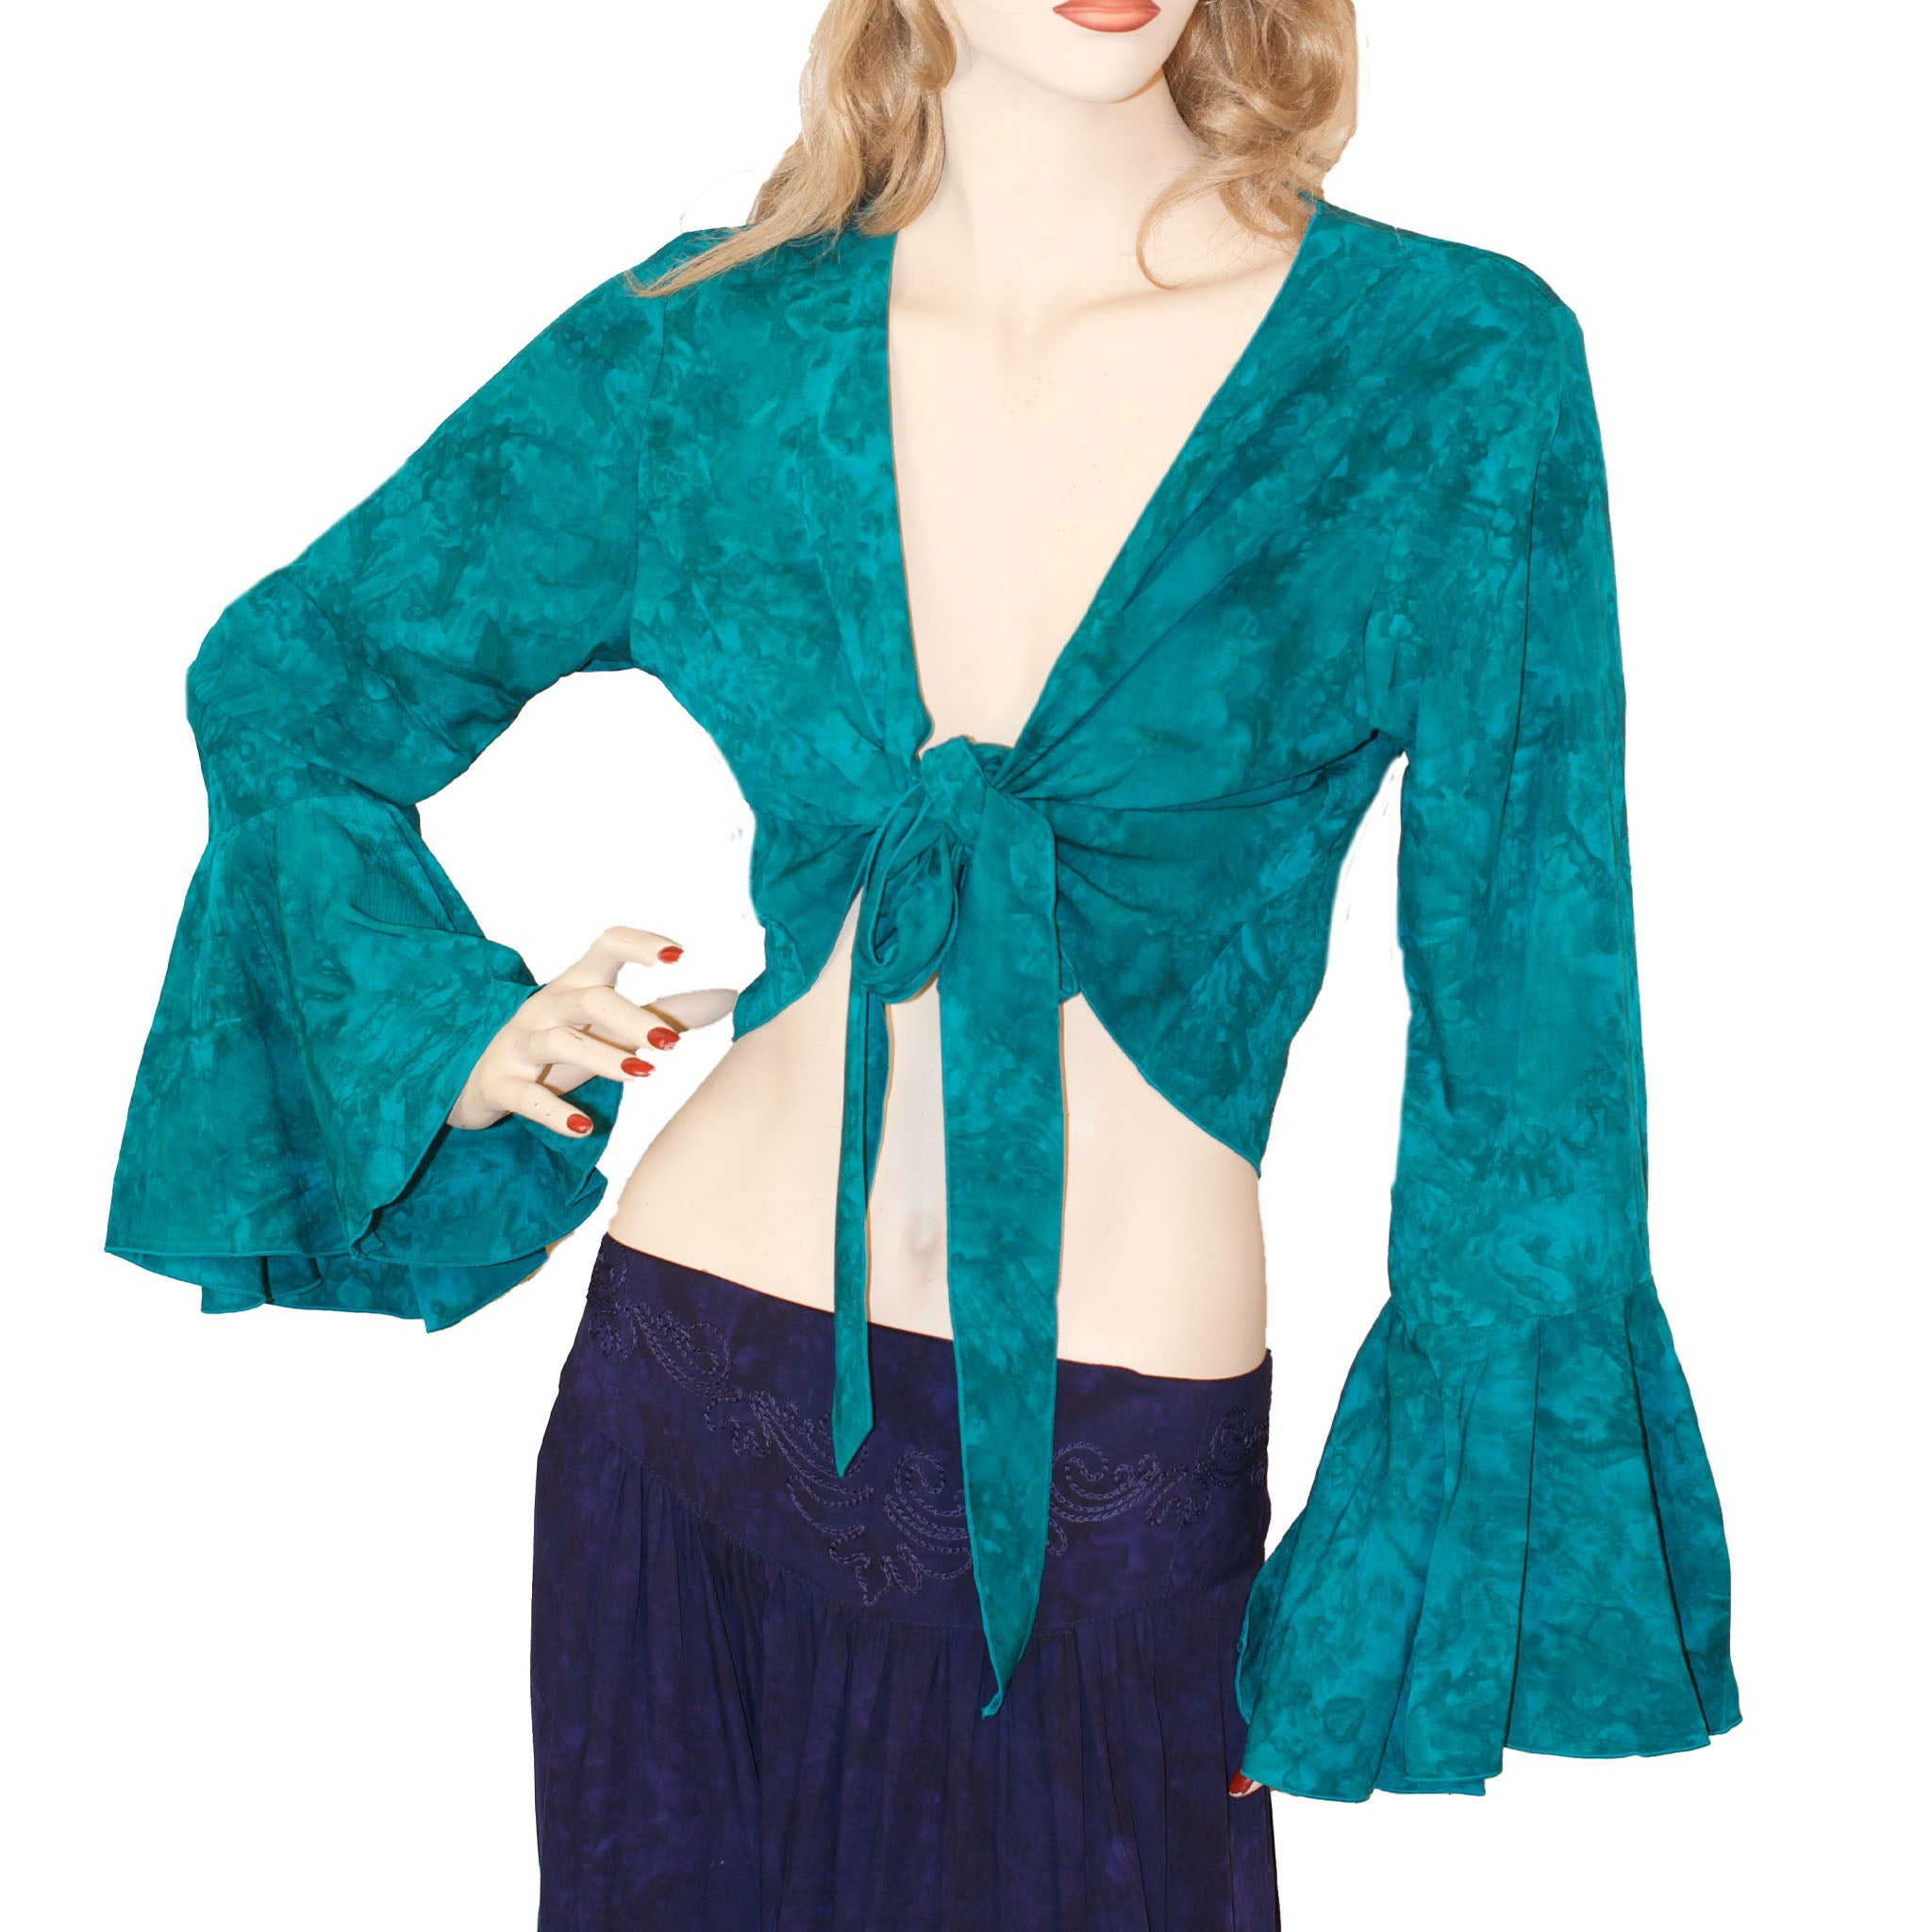 Womans Gypsy Top Renaissance Top Belly Dance Top  teal